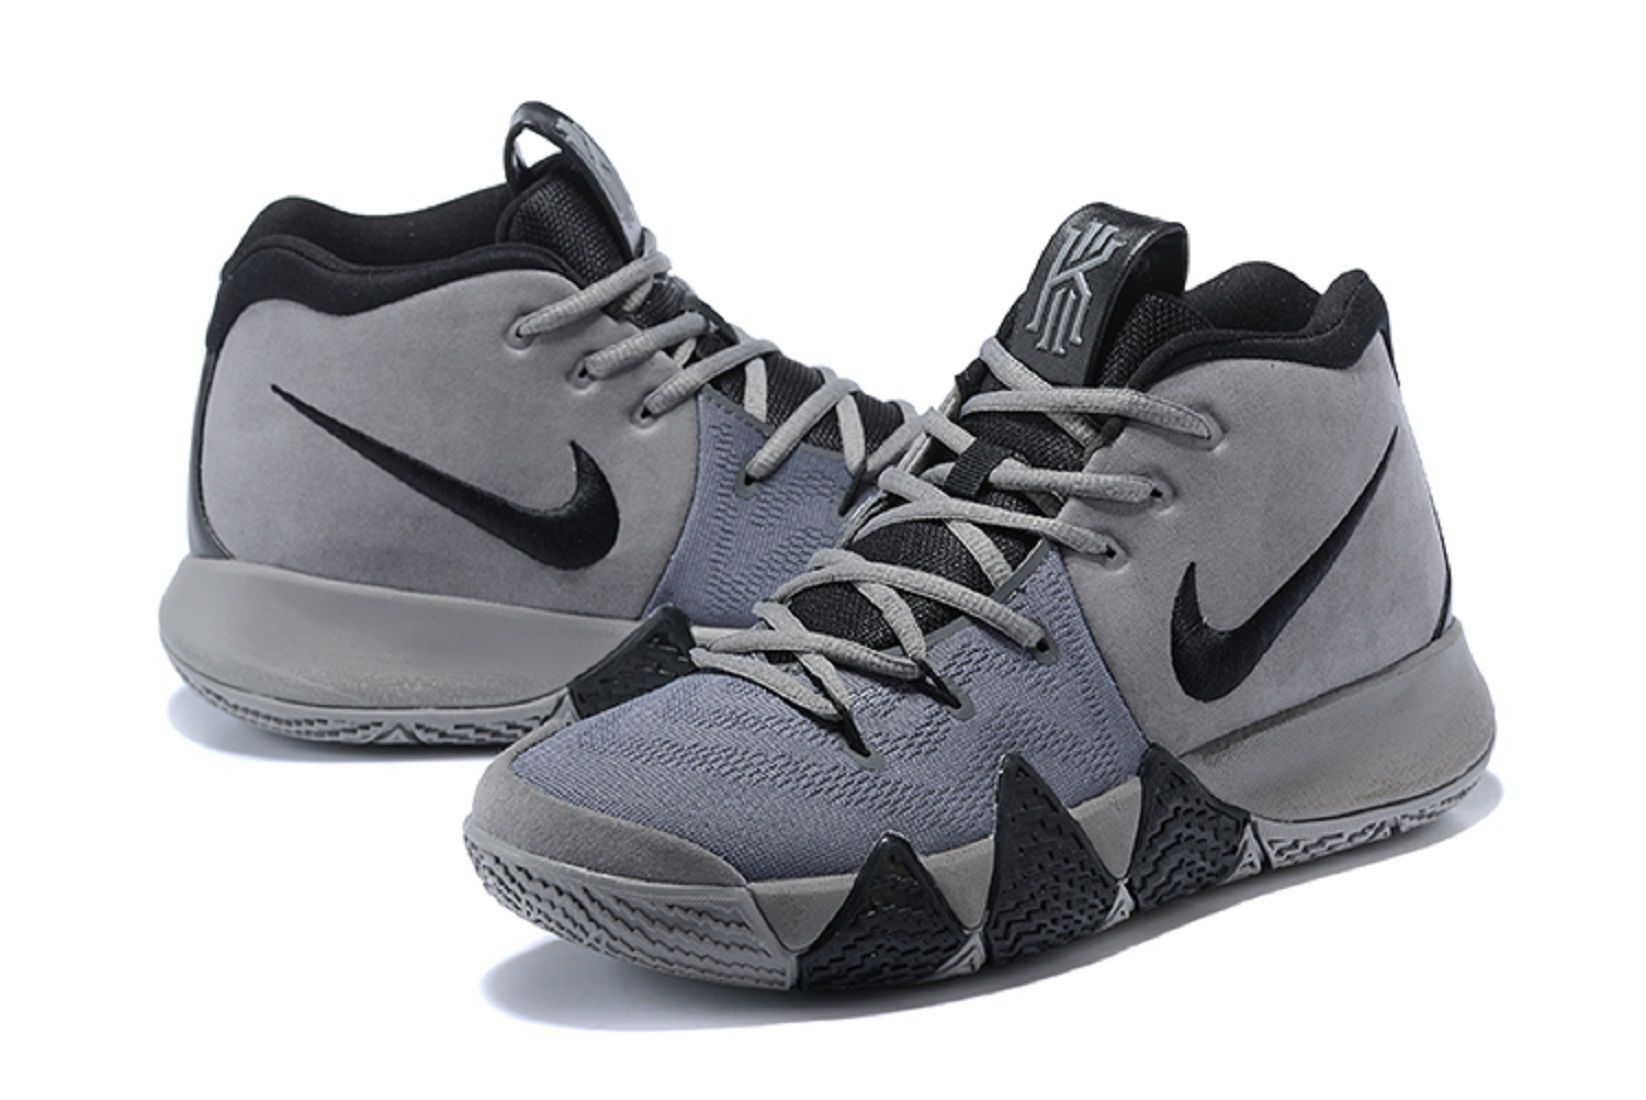 cheap for discount 88a5b fda28 Nike Kyrie 4 Wolf Gray Basketball Shoes - Buy Nike Kyrie 4 Wolf Gray  Basketball Shoes Online at Best Prices in India on Snapdeal